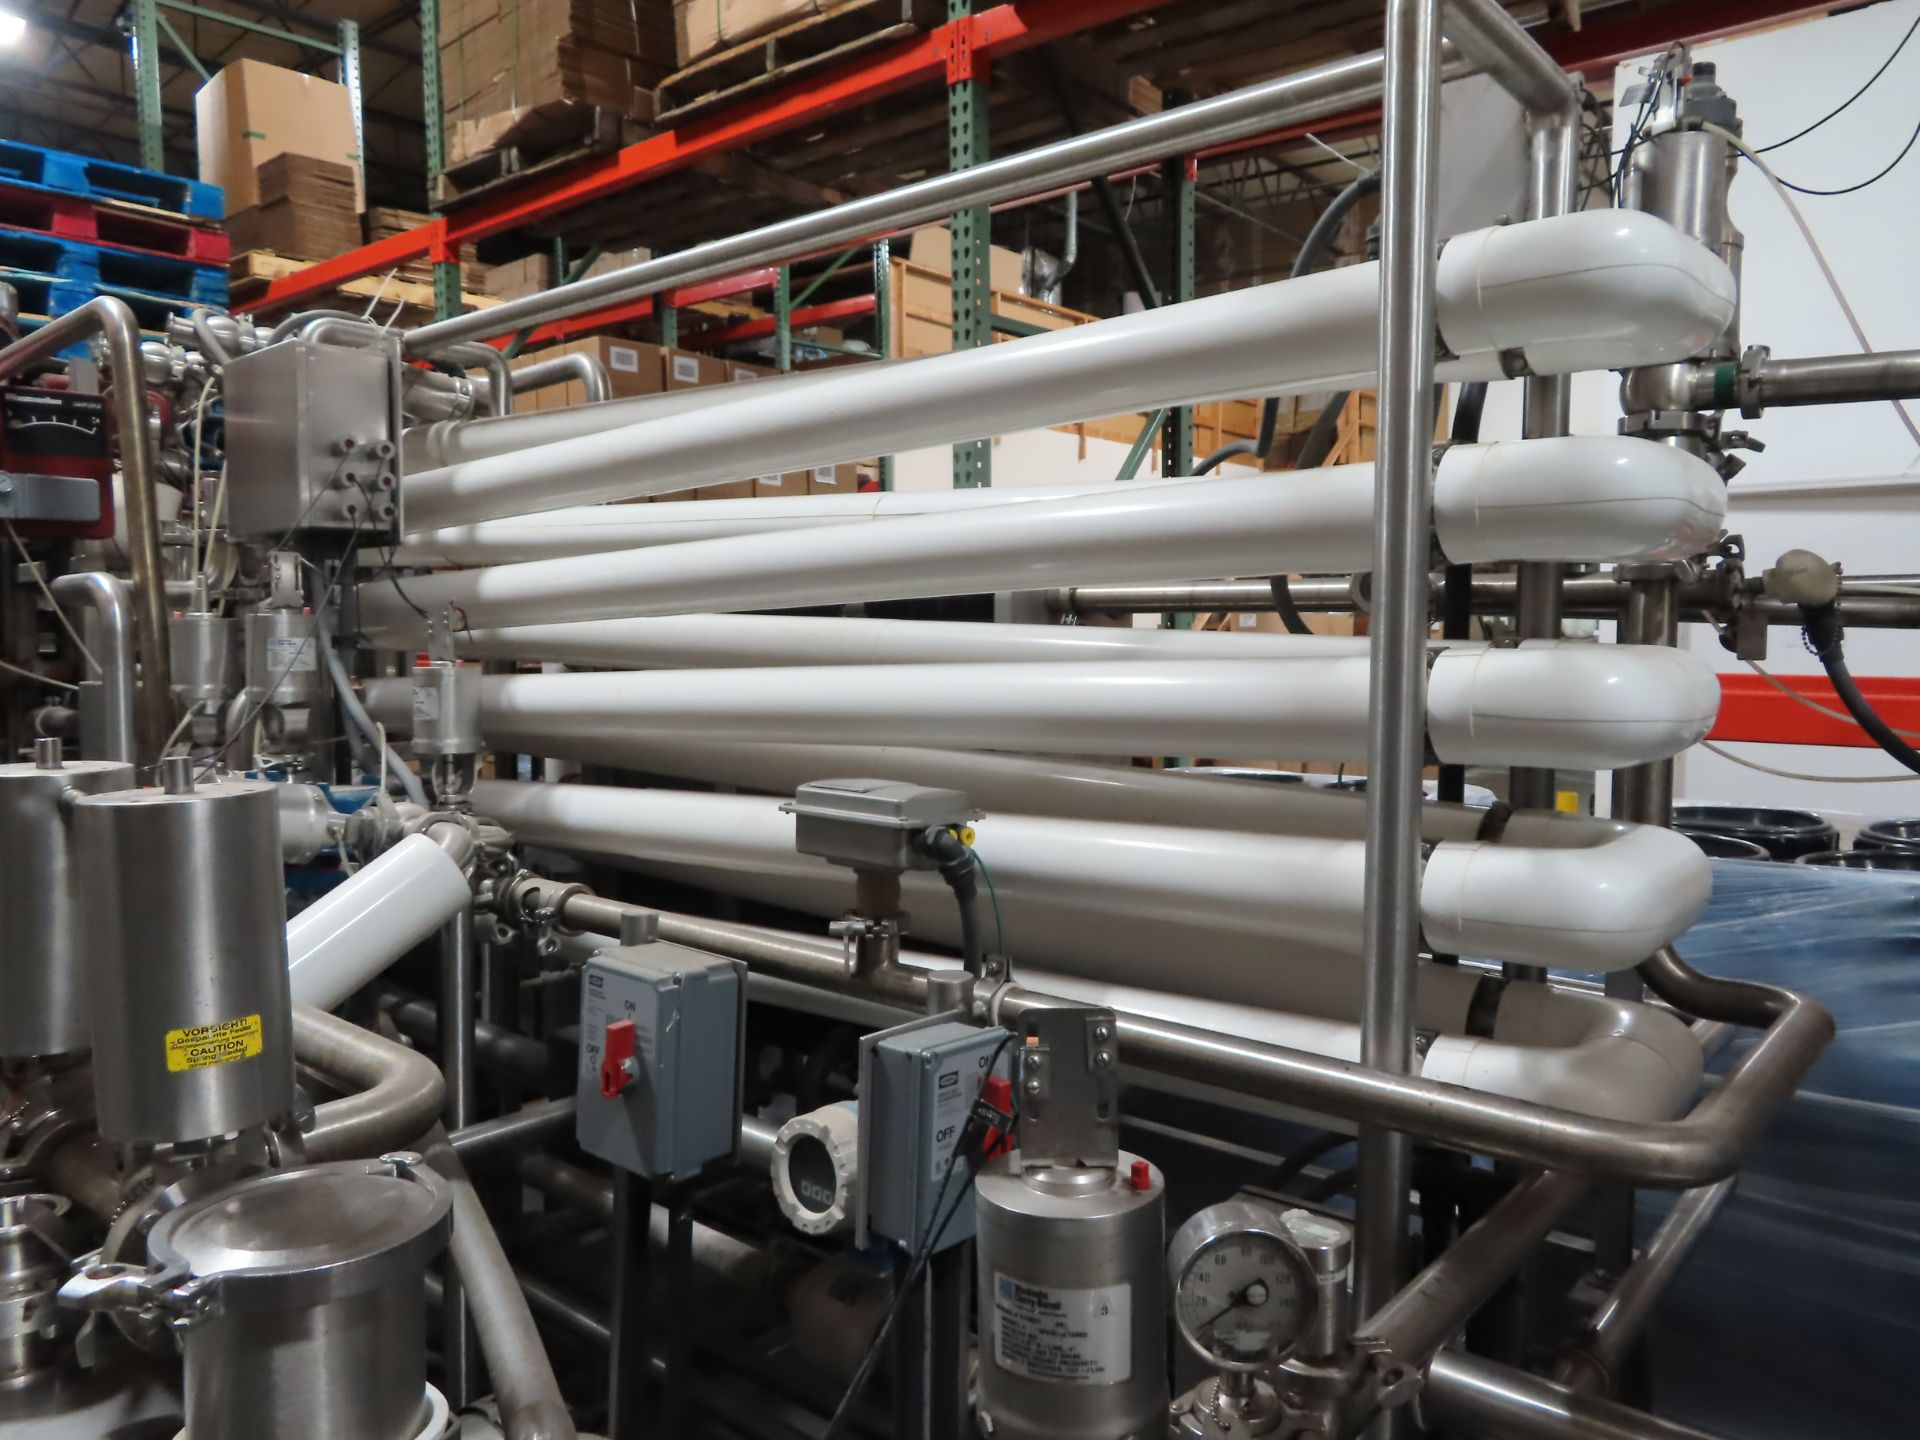 Lot 105 - HTST Pasteurization System